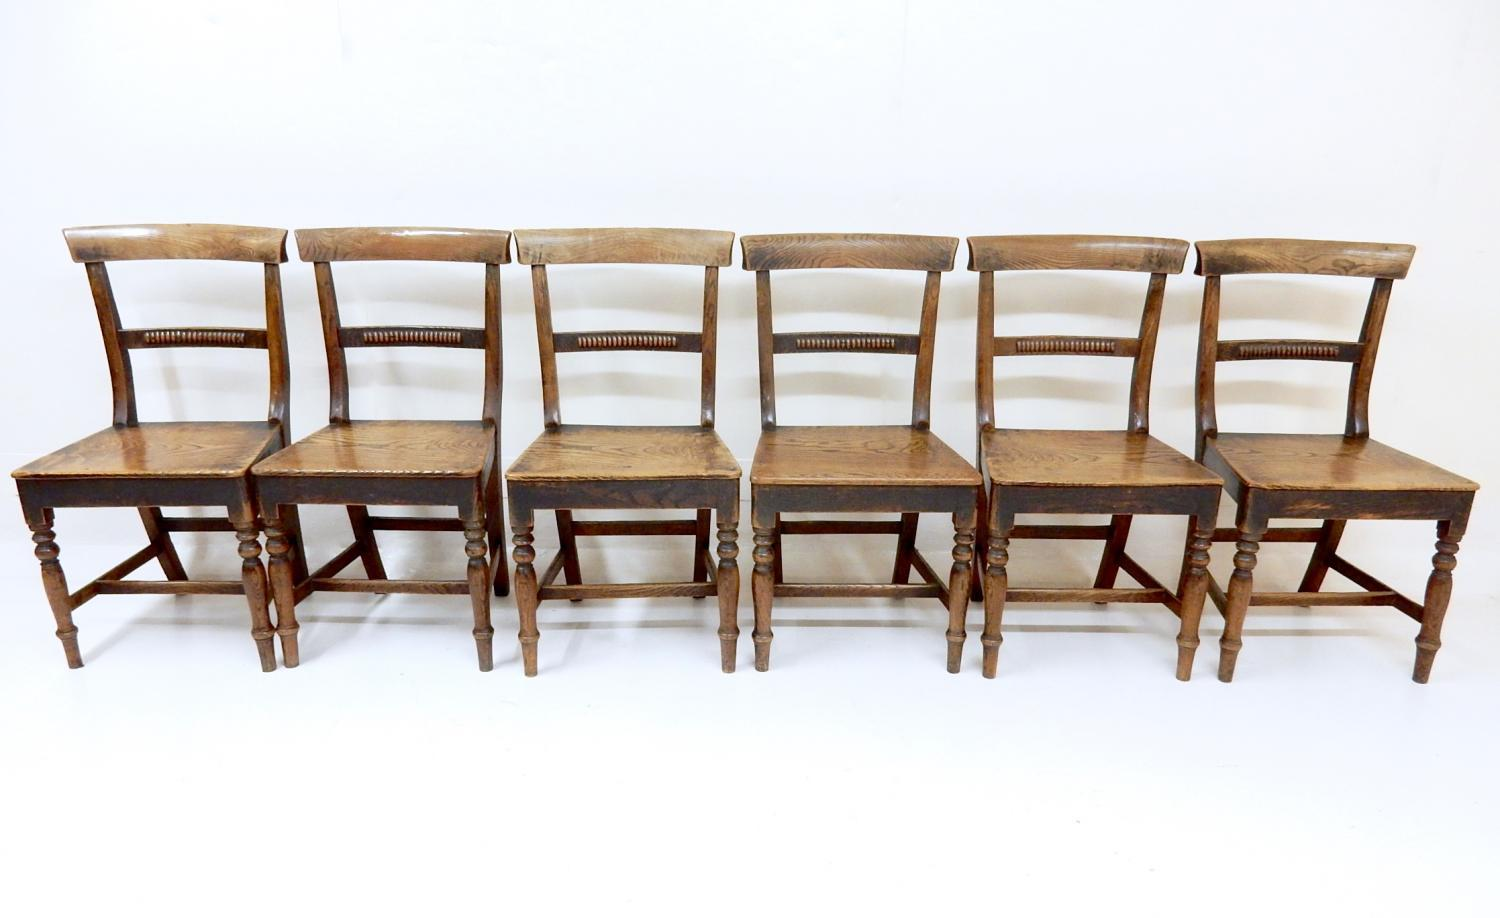 Antique Country Dining Chairs in Tables and Chairs